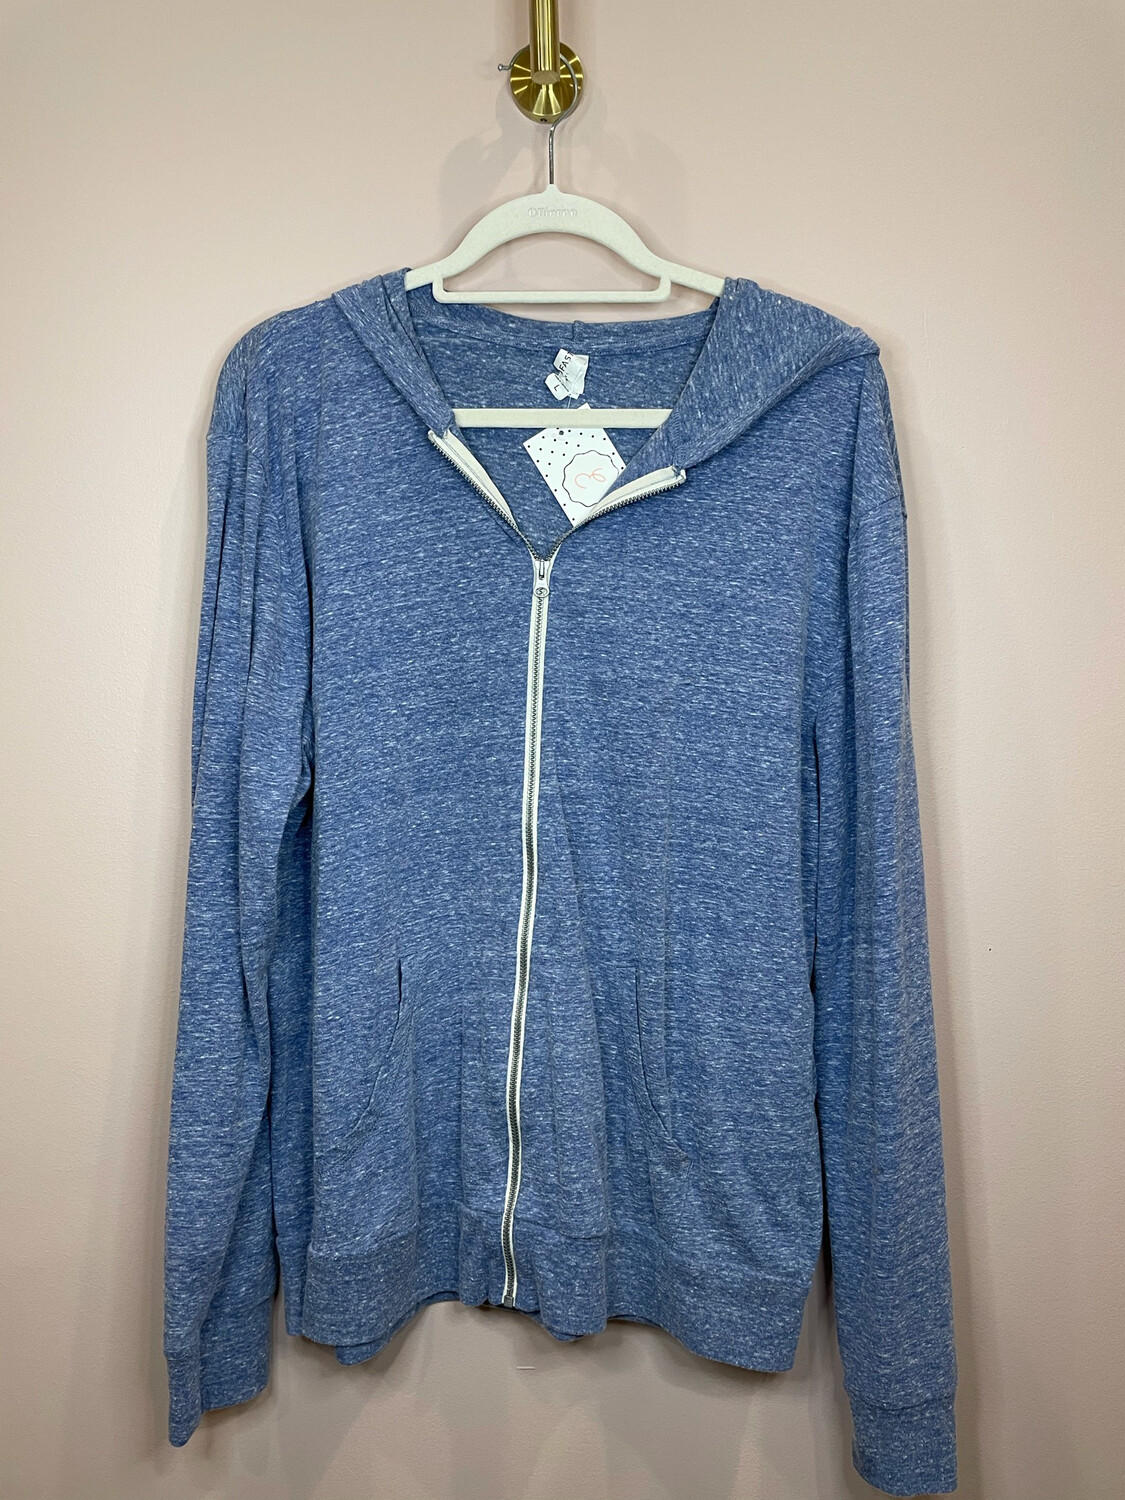 Thread Fast Blue Hooded Zip Up Jacket - L